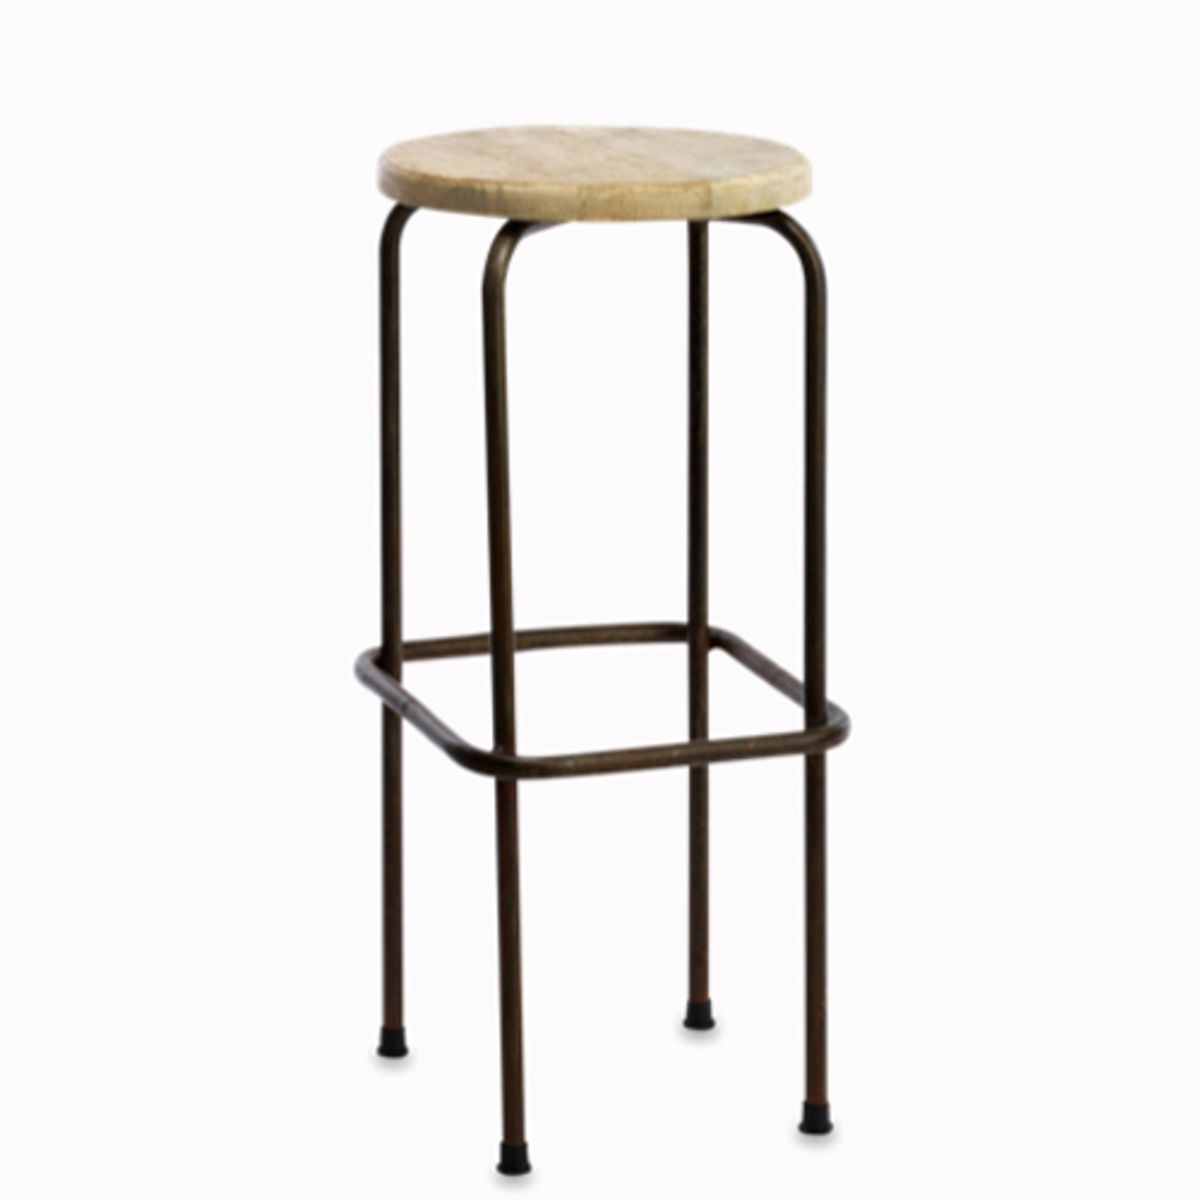 tabouret de bar en m tal vieilli et assise en manguier nandi decoclico. Black Bedroom Furniture Sets. Home Design Ideas